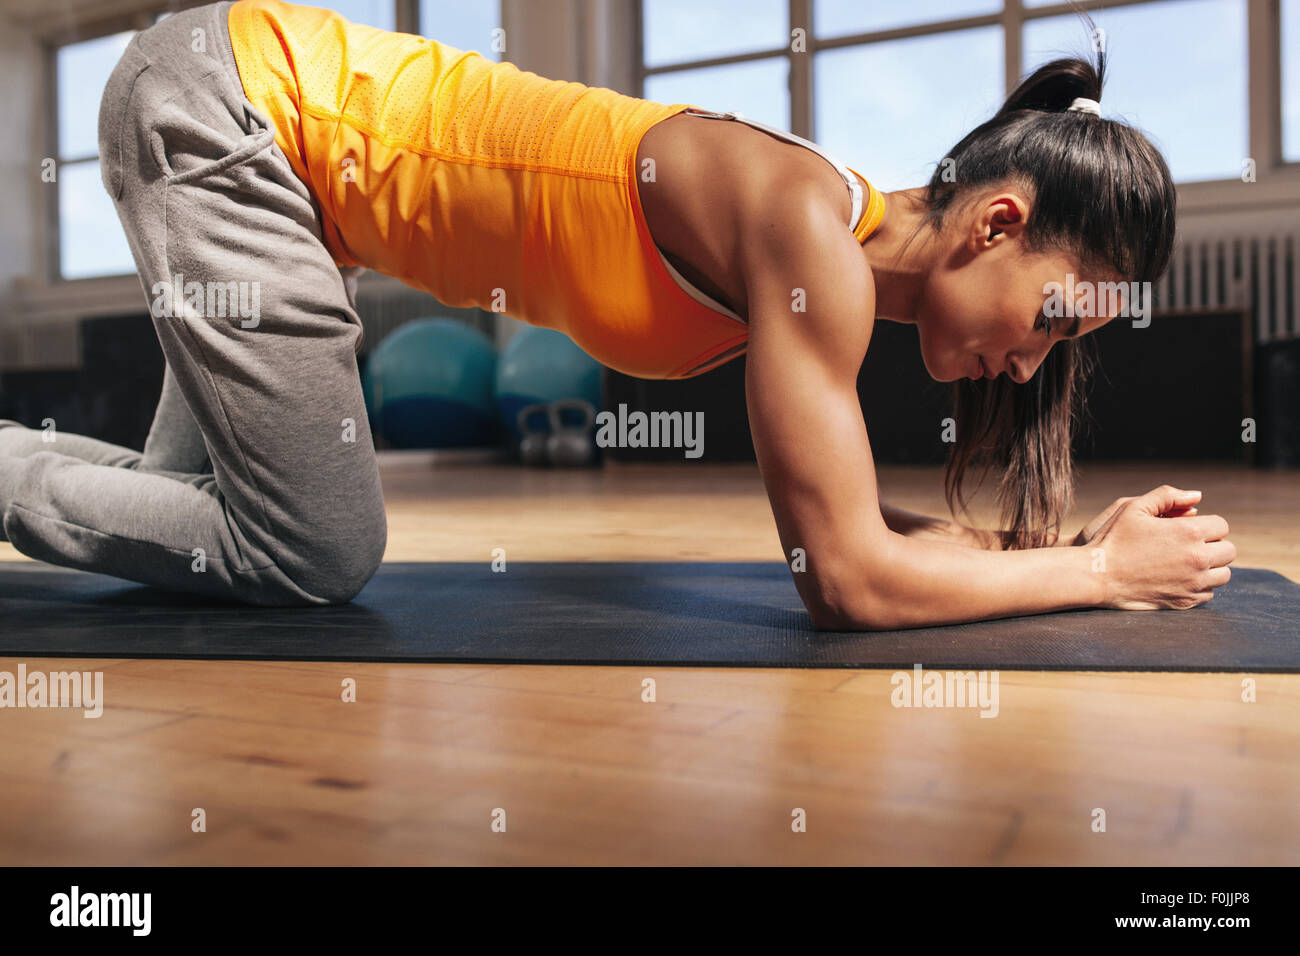 Young woman exercising on fitness mat. Strong young female athlete doing core workout in gym. - Stock Image